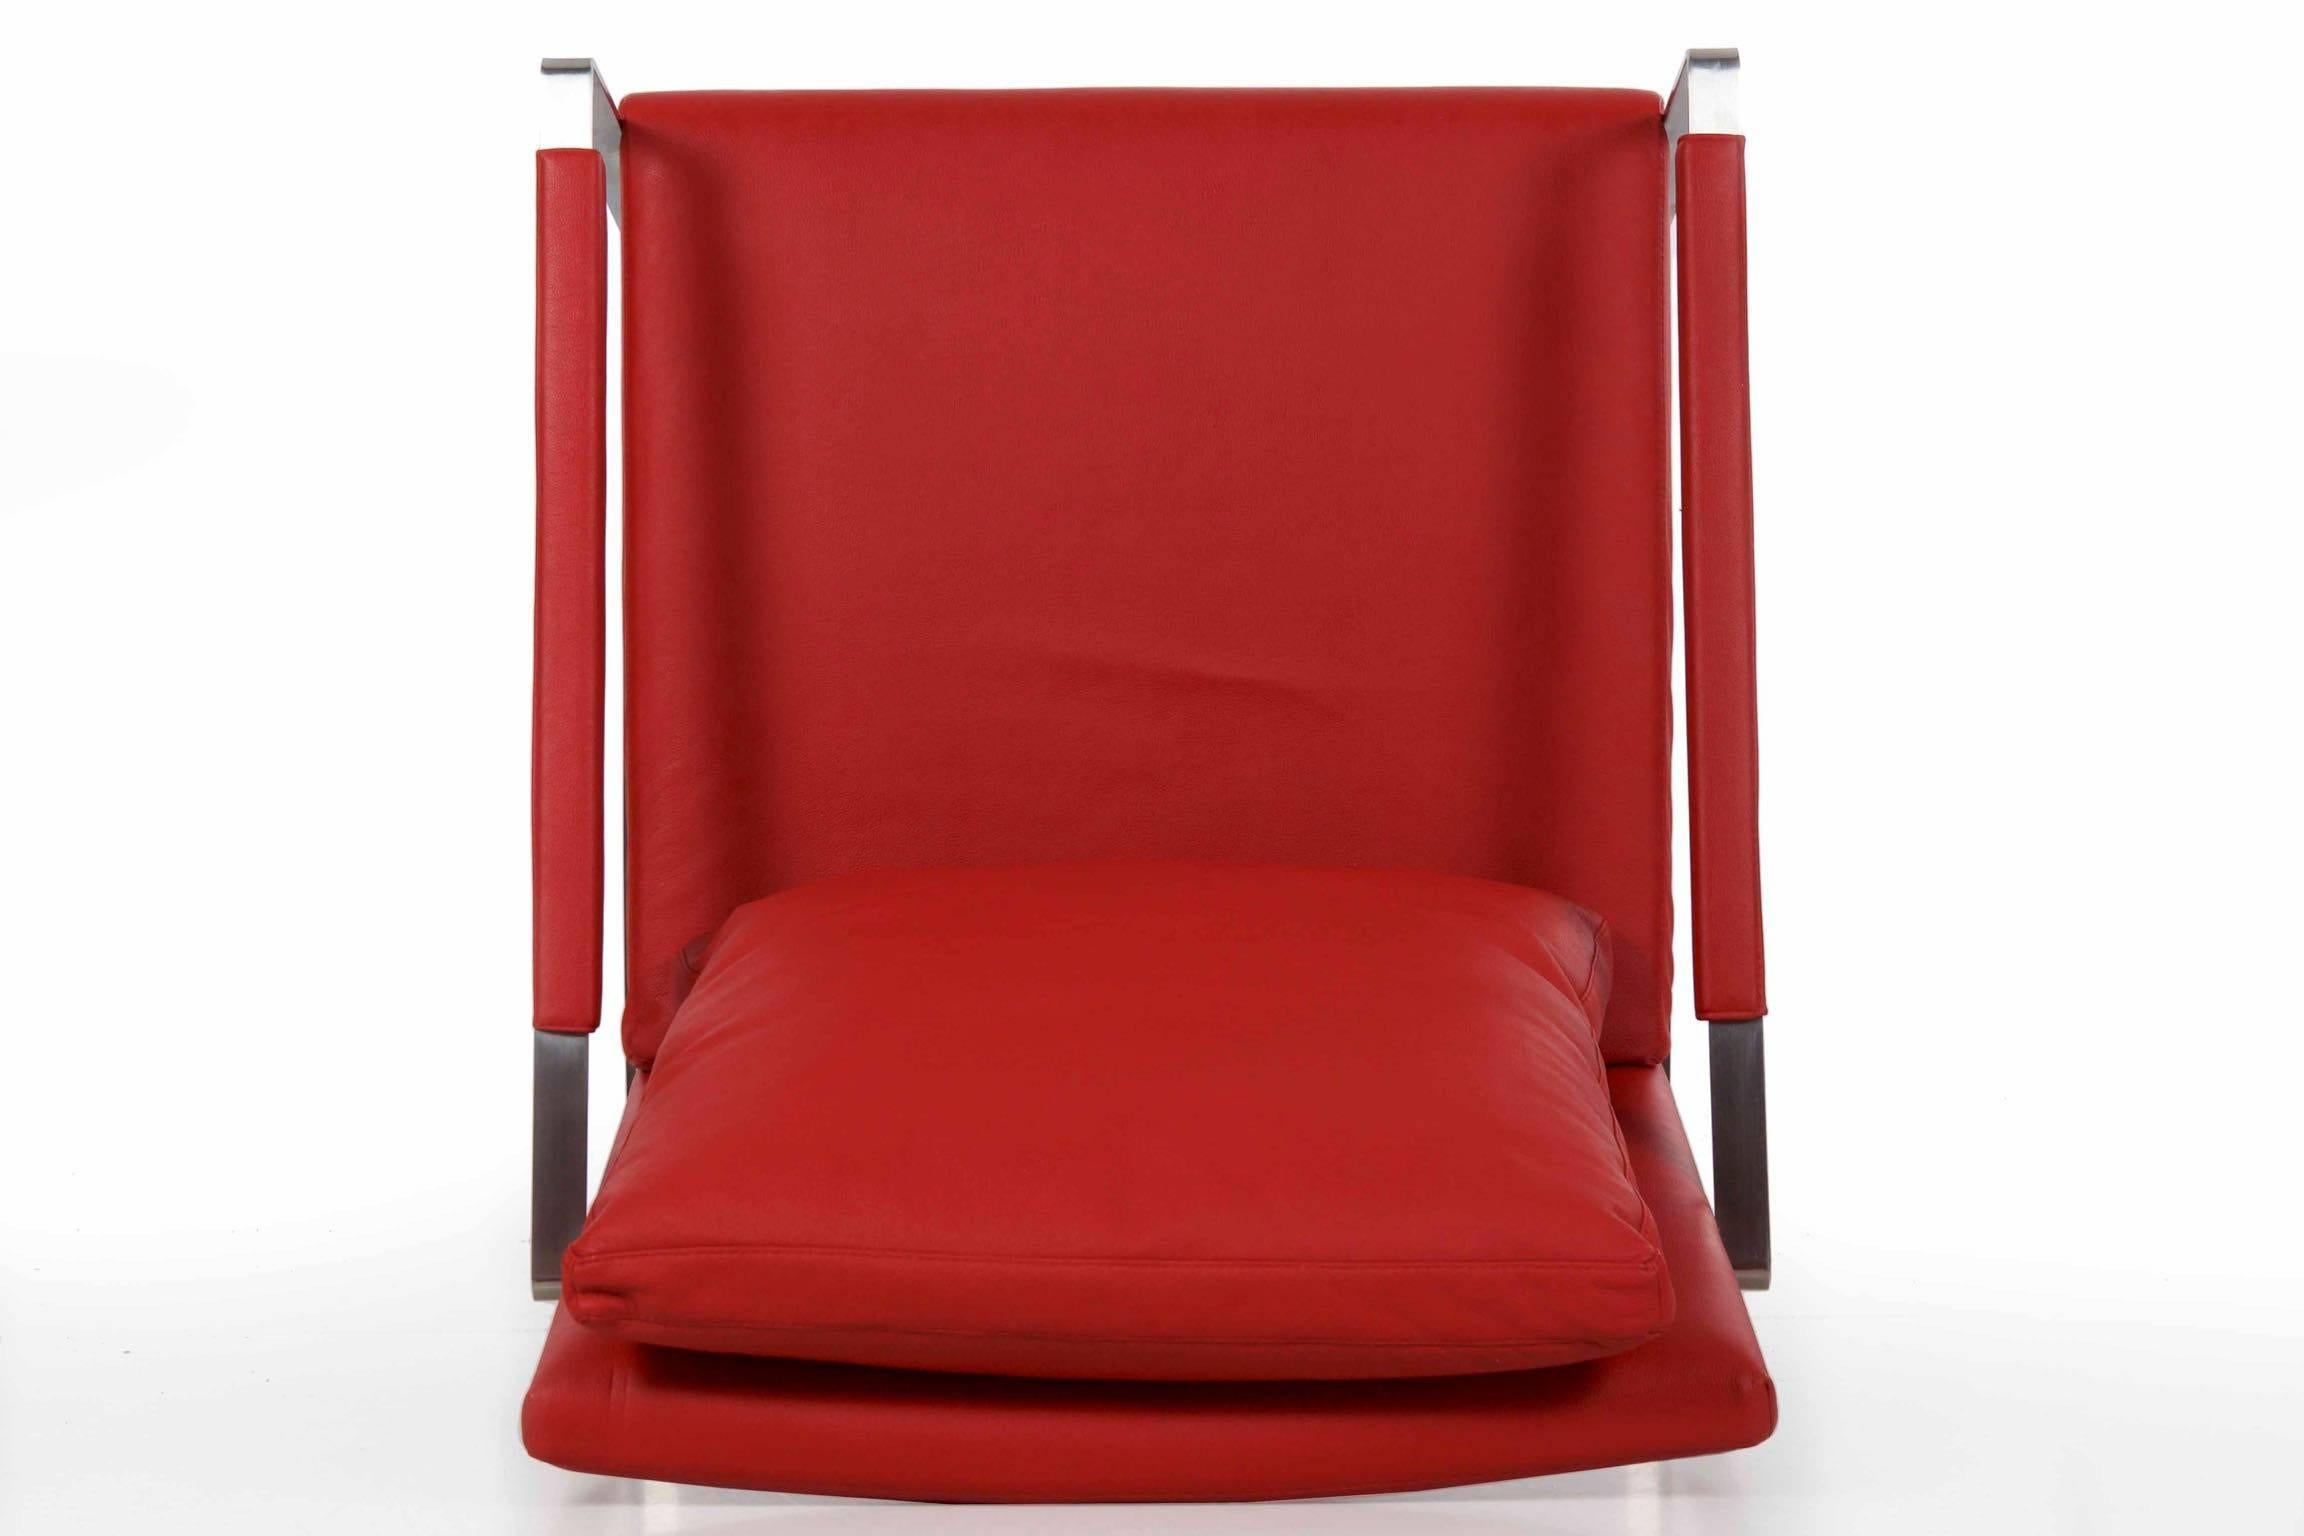 Modern Brushed Steel Red Faux-Leather Cube Lounge Chair Style of Milo Baughman For  sc 1 st  1stDibs & Modern Brushed Steel Red Faux-Leather Cube Lounge Chair Style of ...